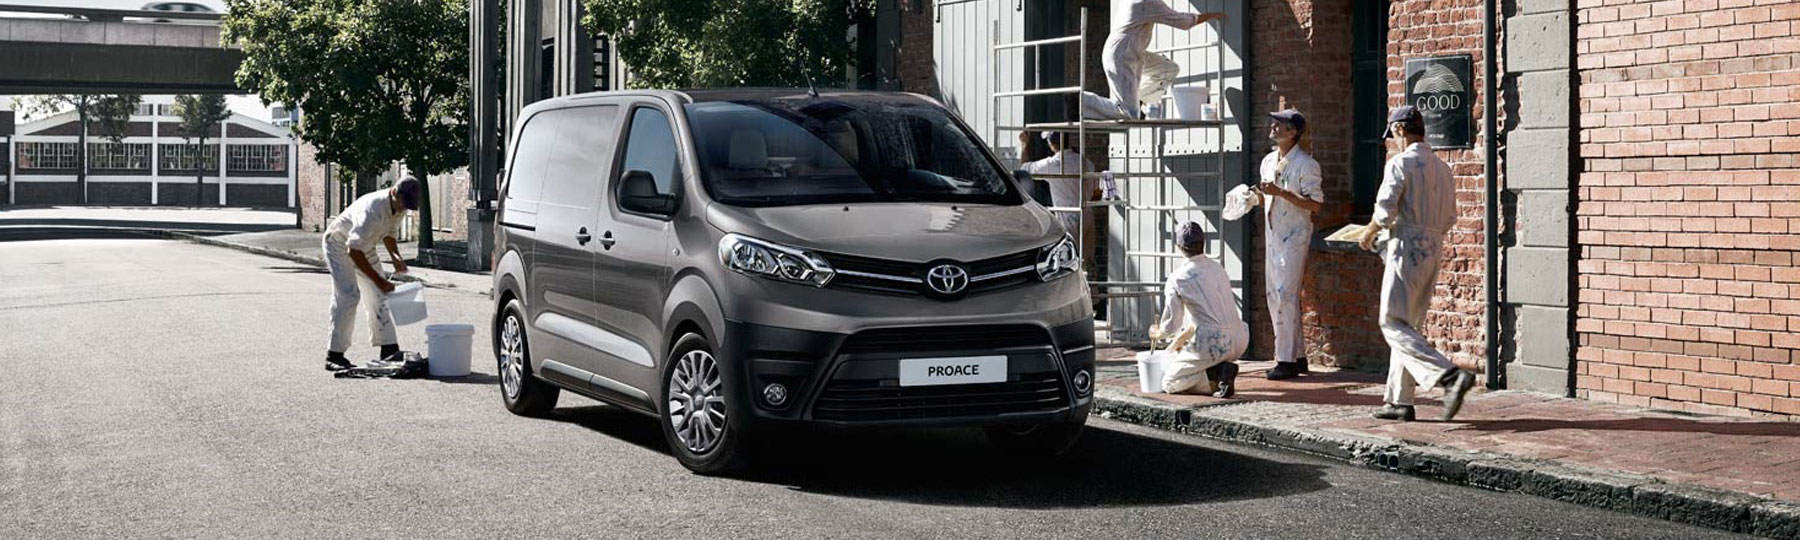 toyota Proace Business Offer